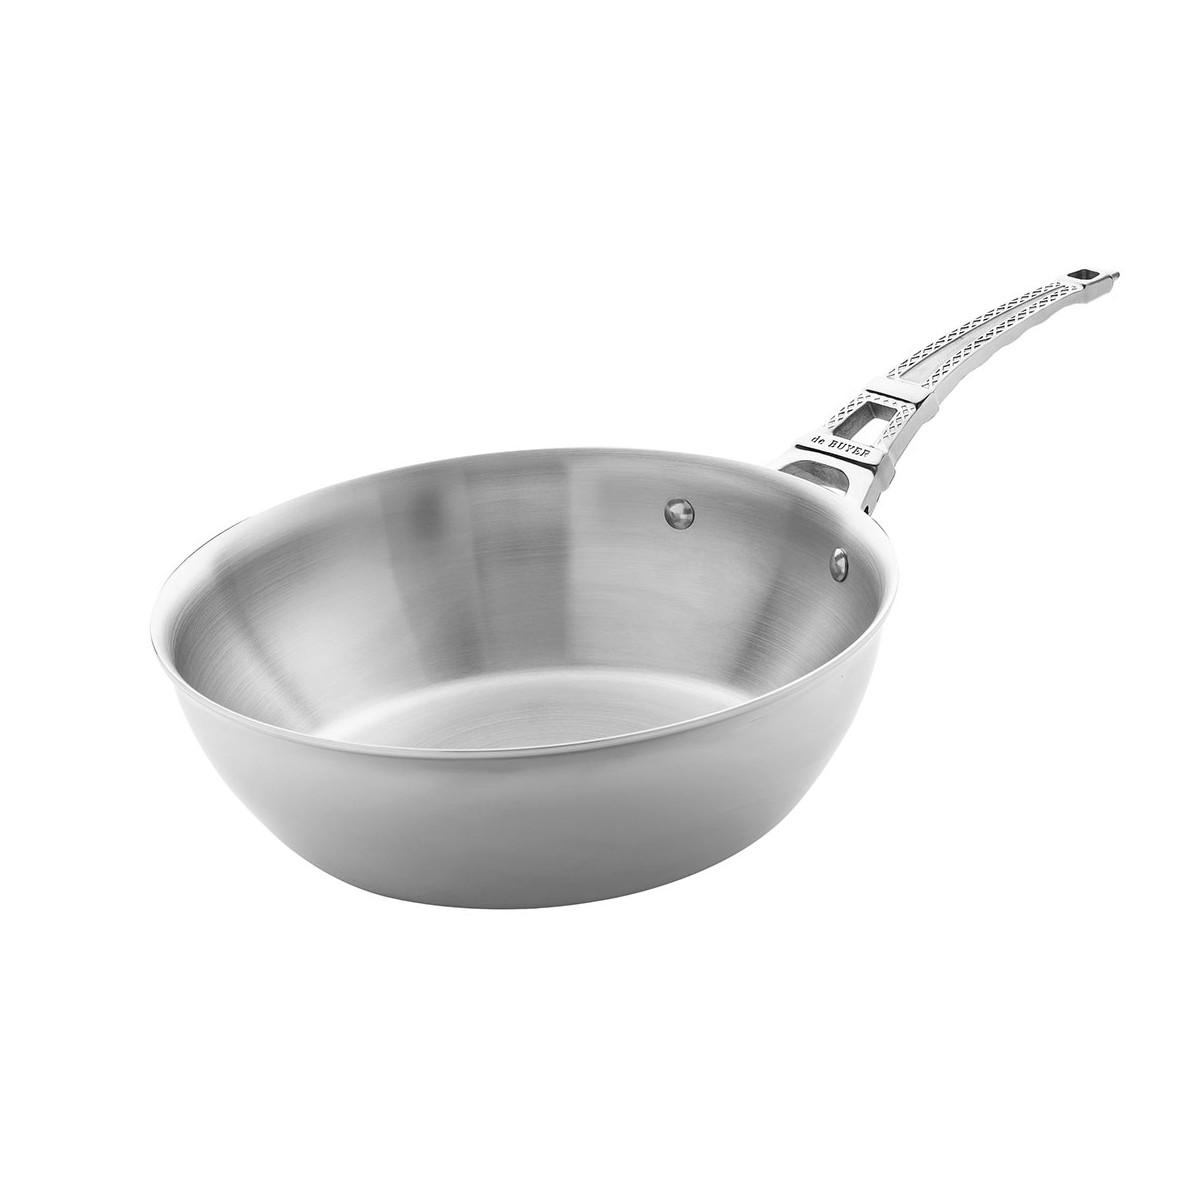 Bon Chef Sauté//Frying Pan With Cover Country French Collection 60304 1.625 Qt